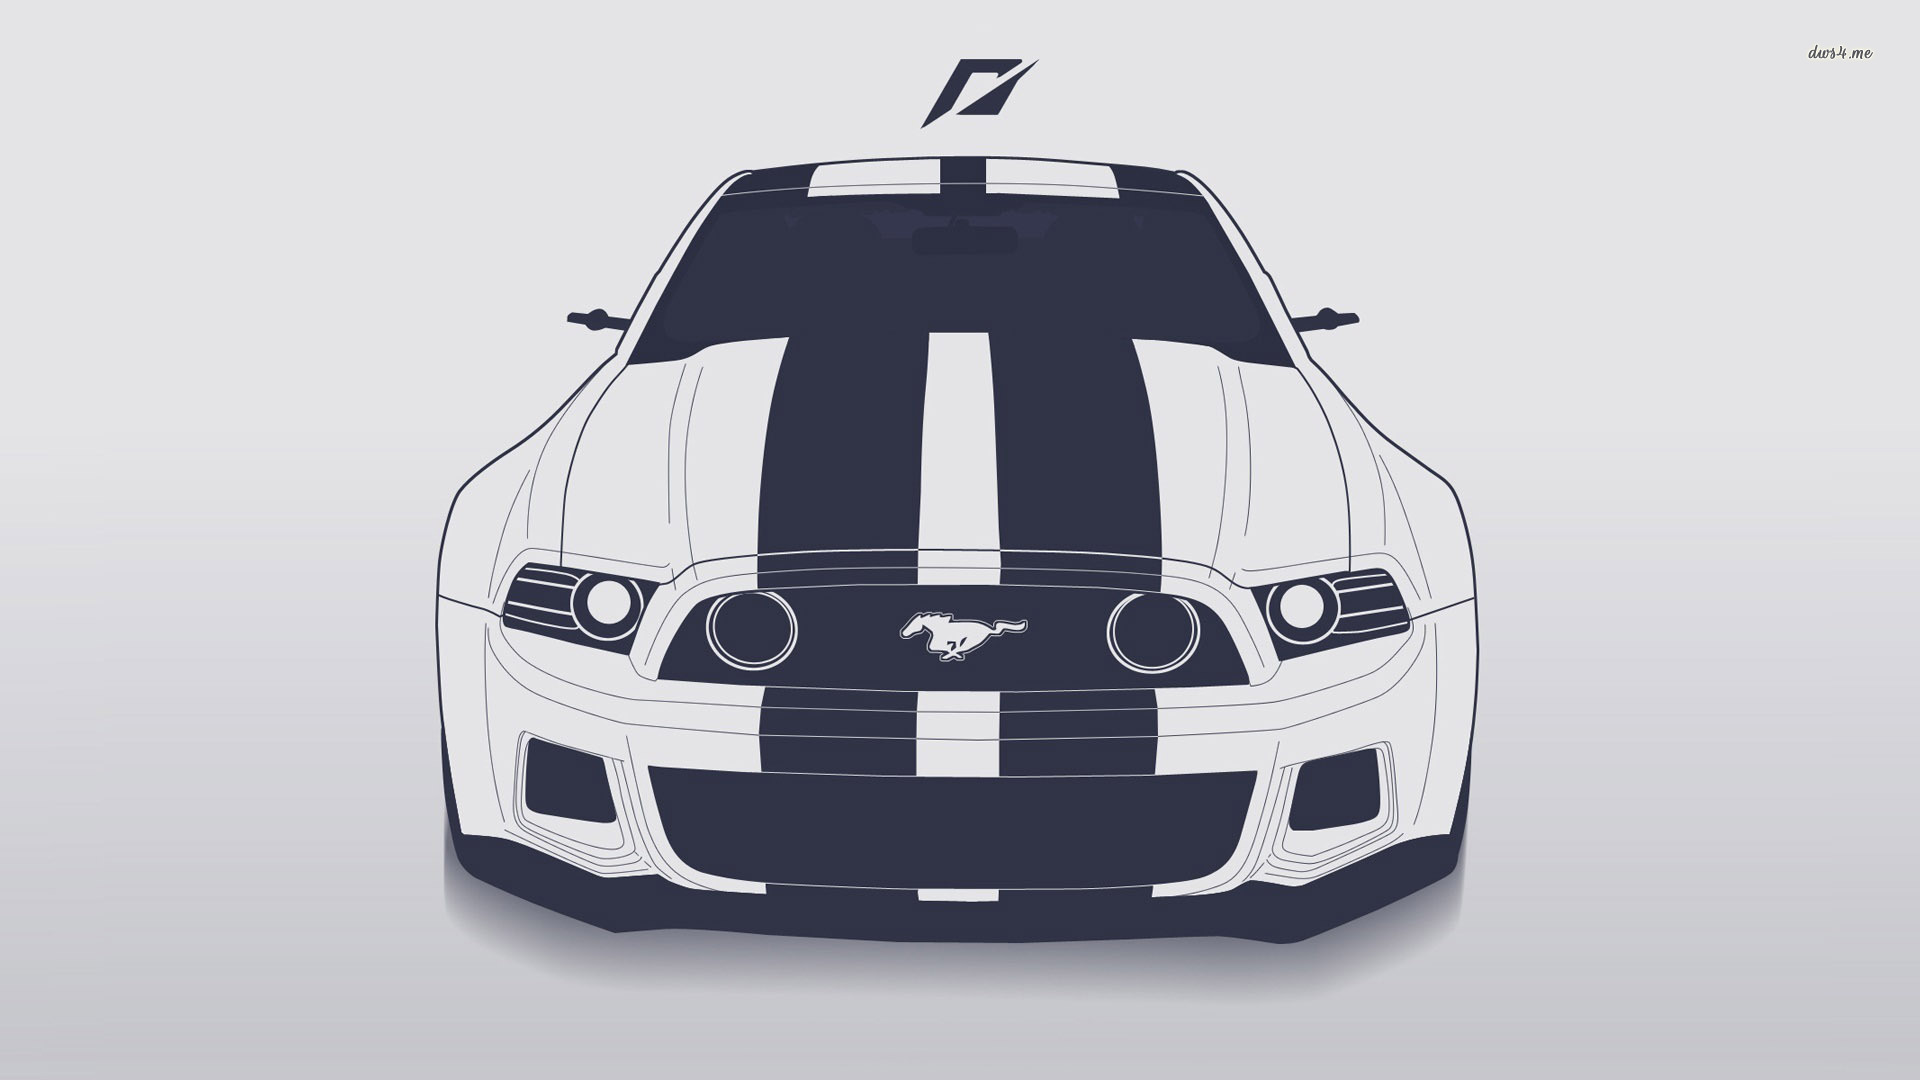 Ford Mustang Vector Hd Cars 4k Wallpapers Images